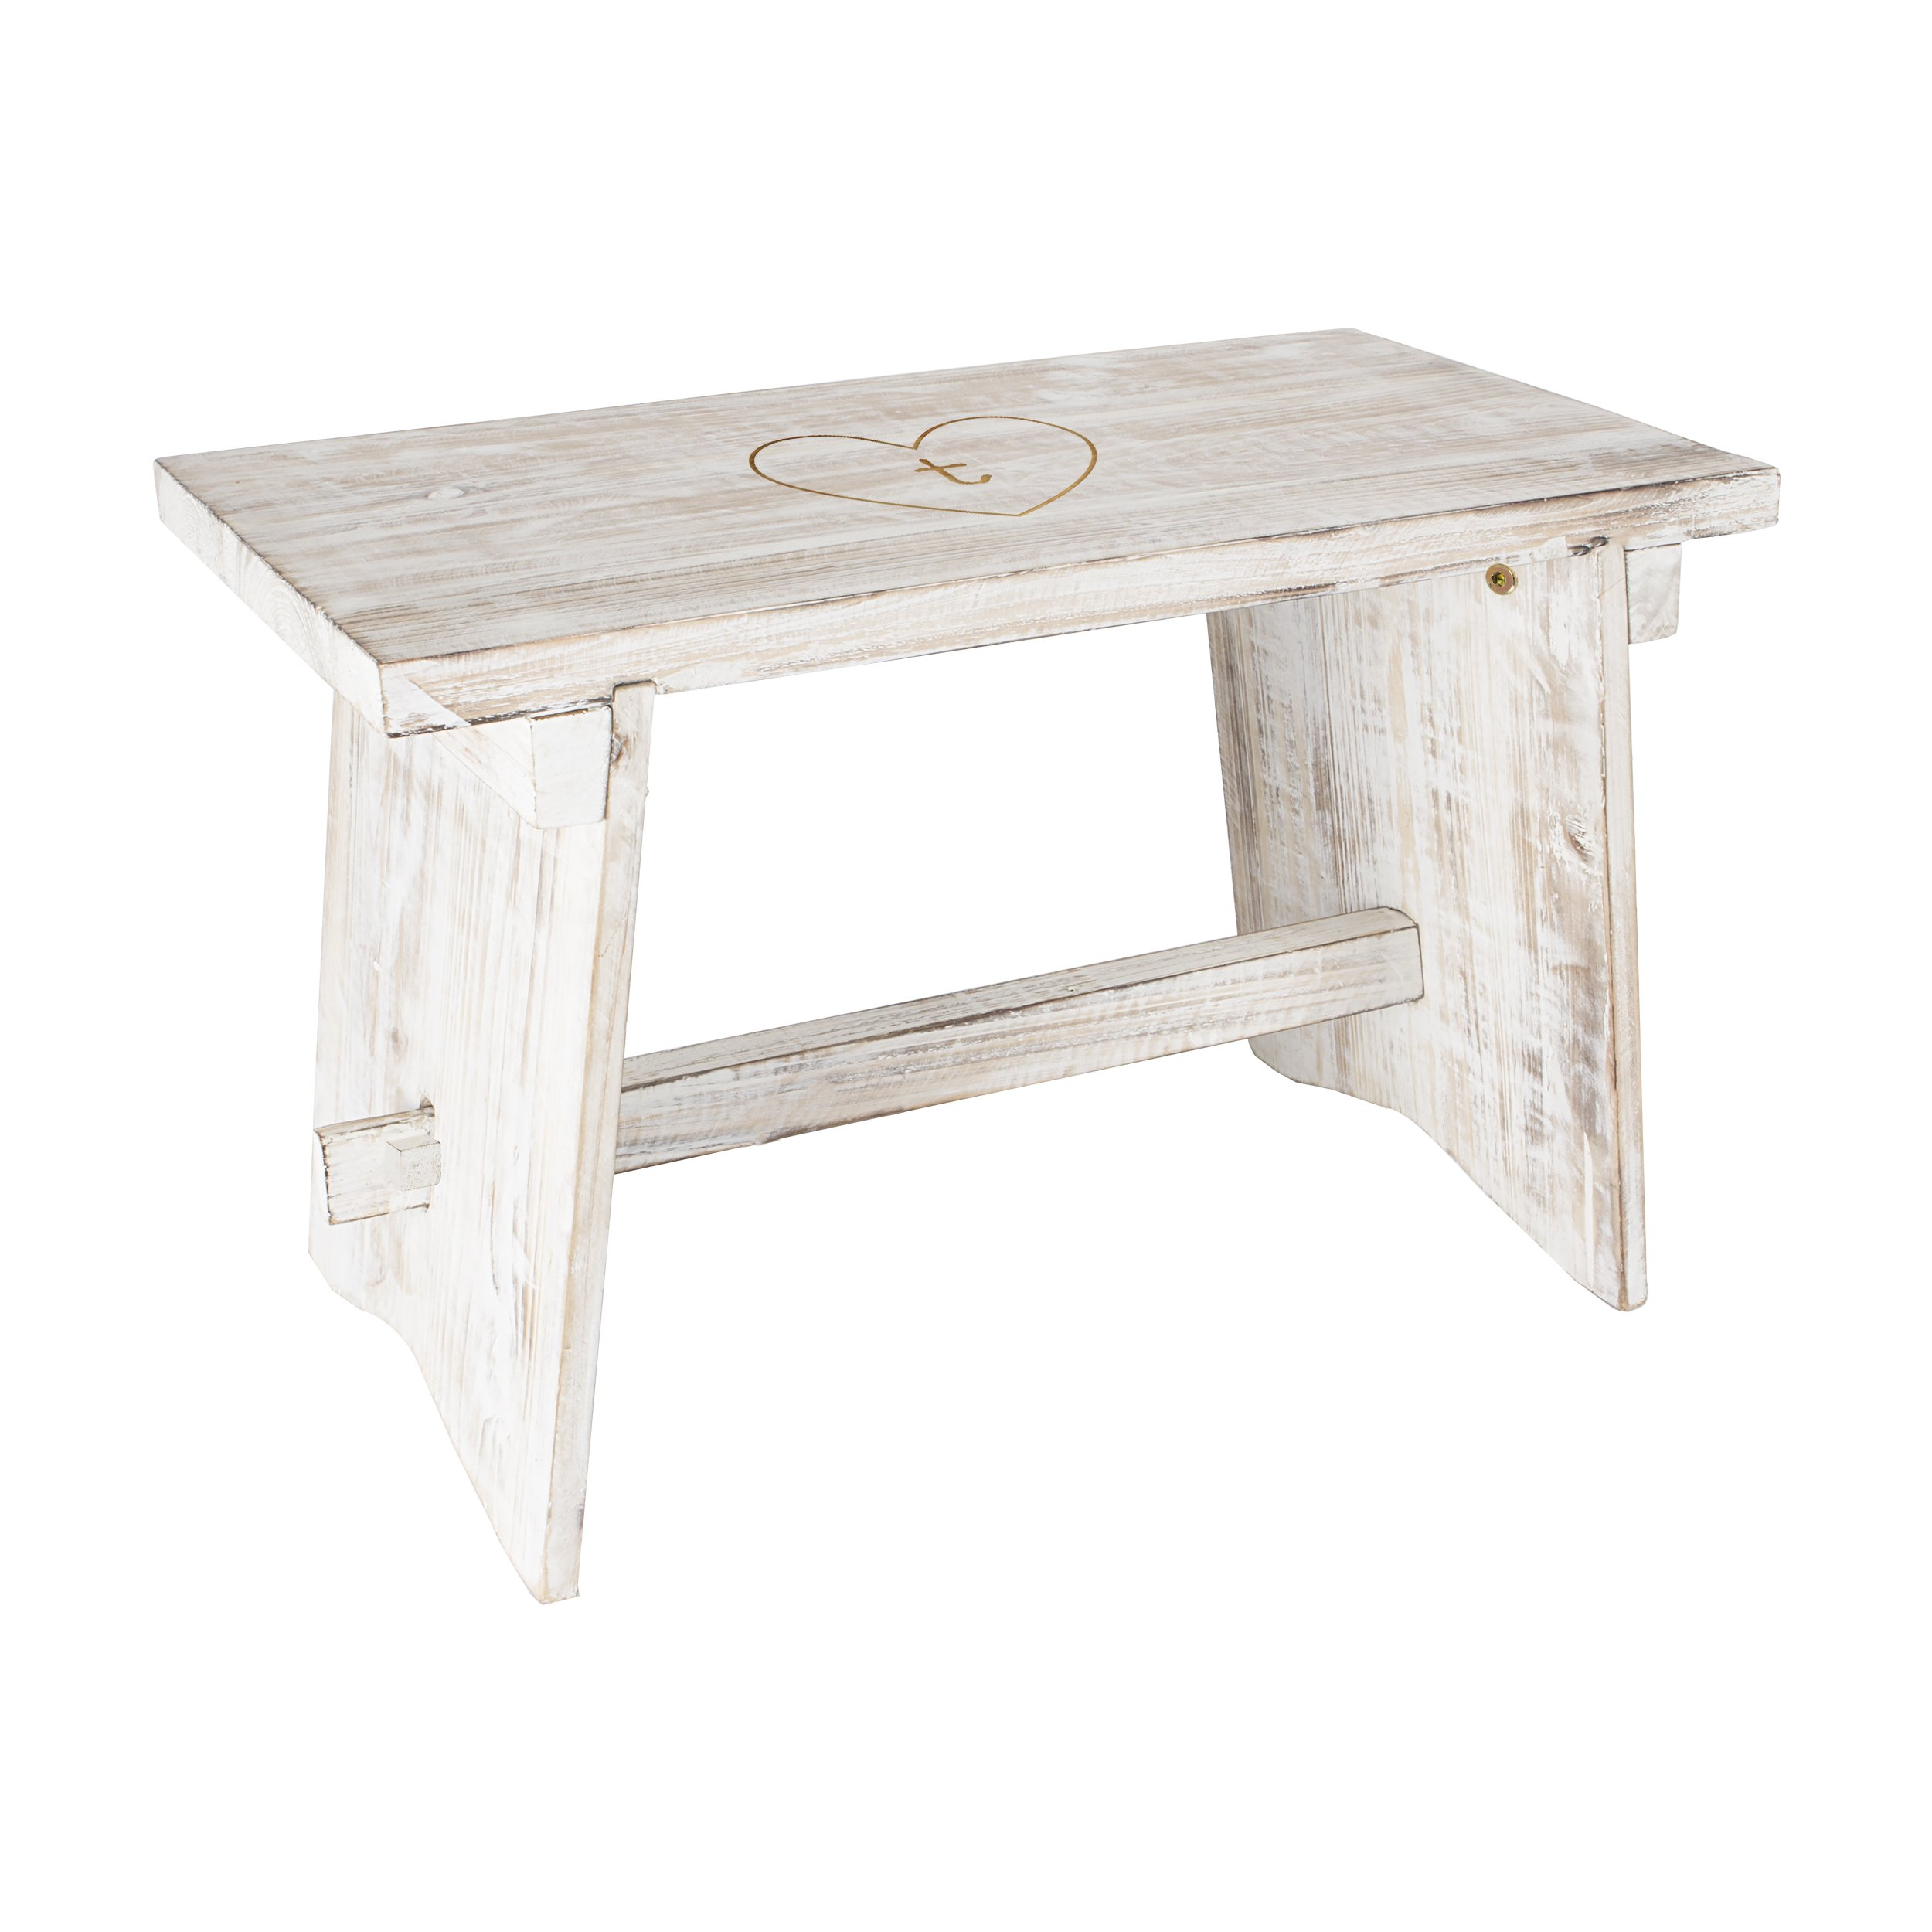 Cathy's Concepts HRT-3950-T Personalized Heart Rustic Wooden Guestbook Bench